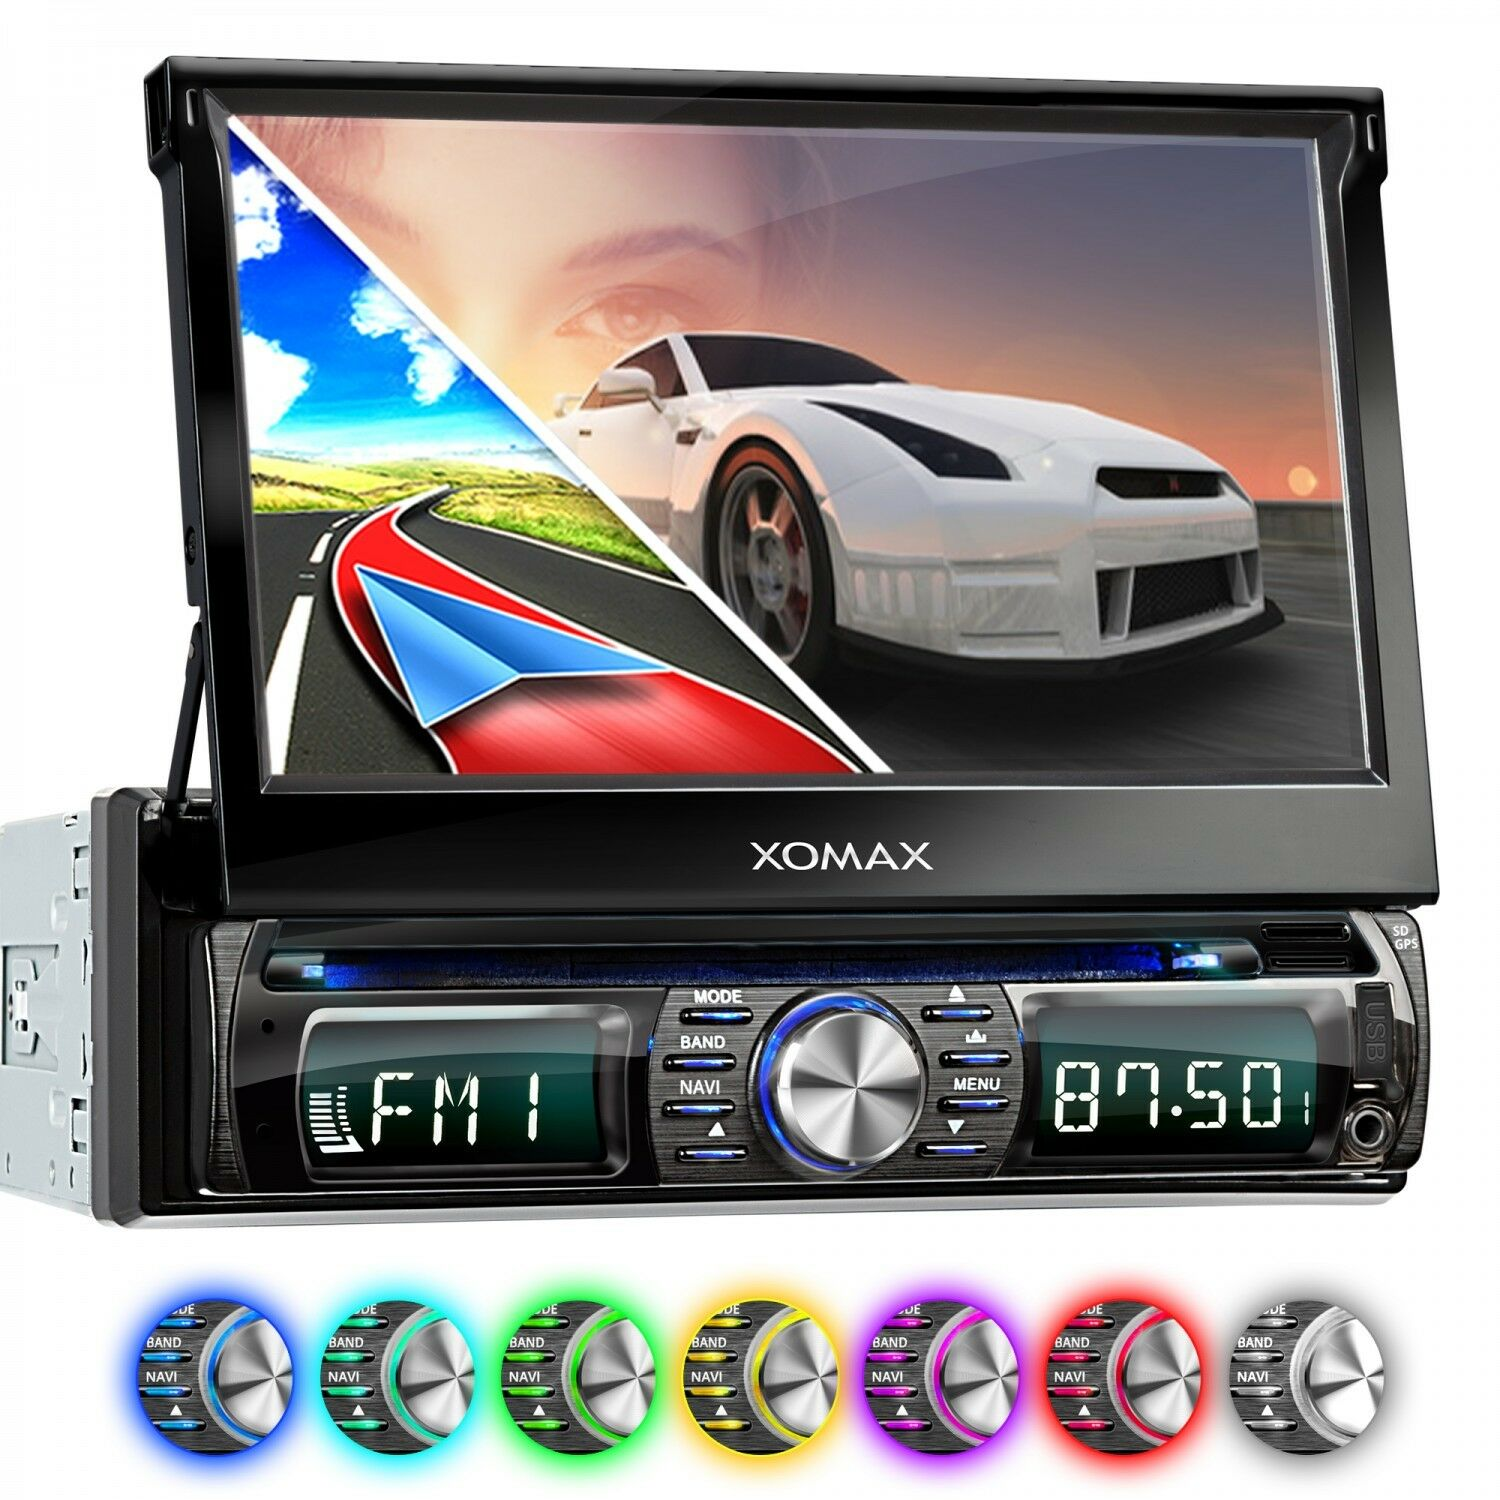 autoradio mit dvd cd navigation navi gps bluetooth 7